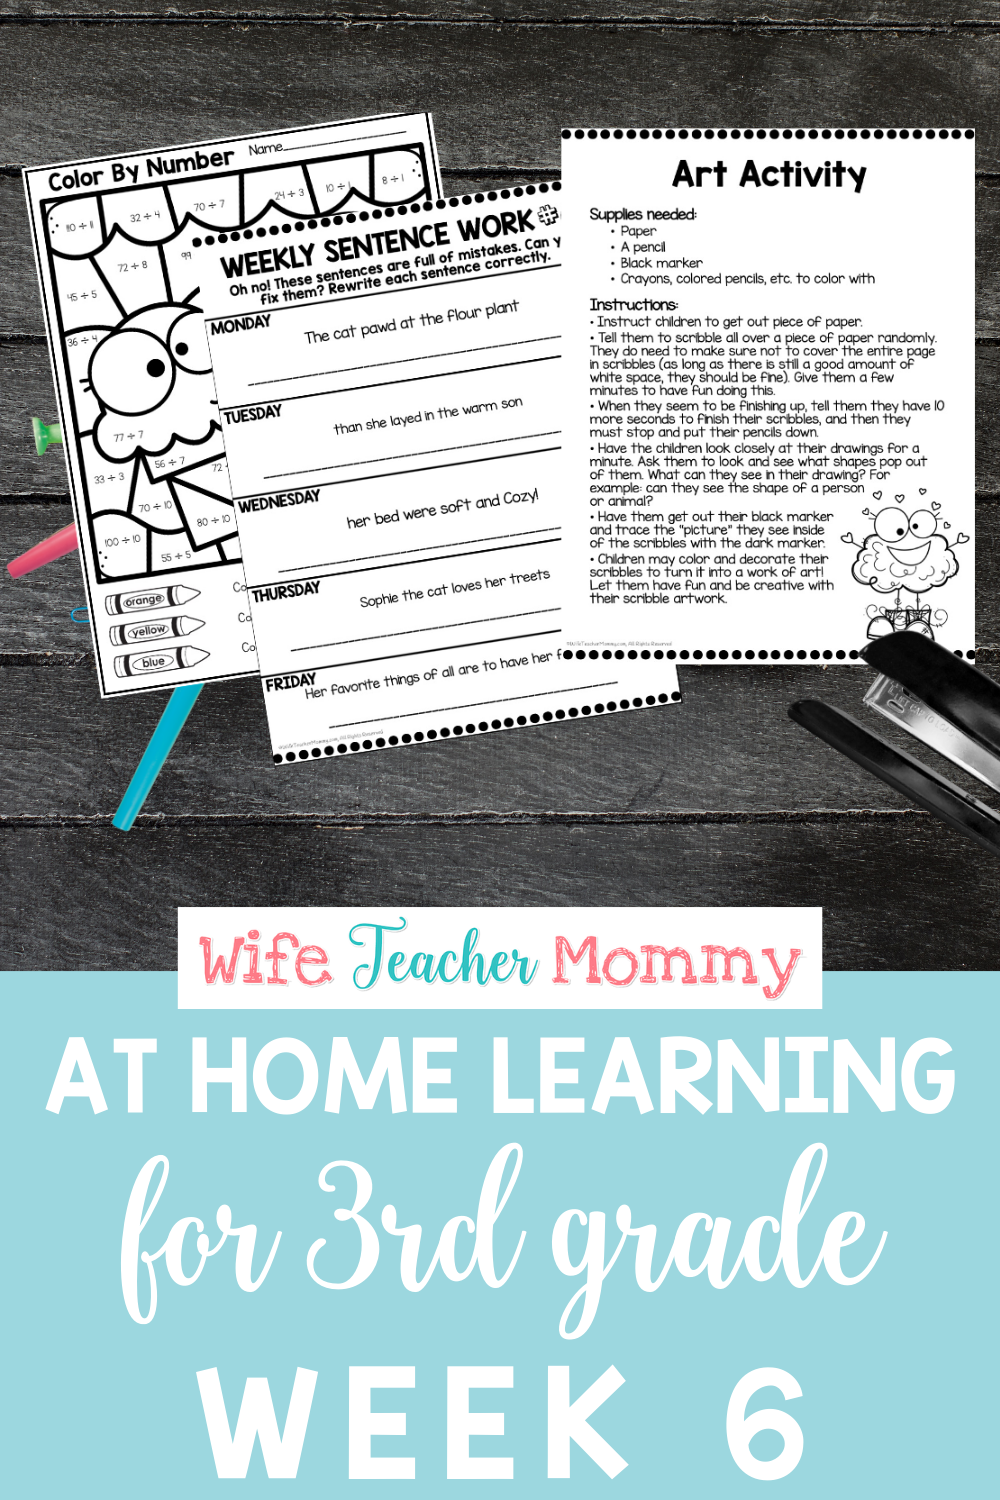 3rd Grade Distance Learning Packet At Home Learning Activities Week 6 Writing Lessons Reading Motivation Read To Self [ 1500 x 1000 Pixel ]